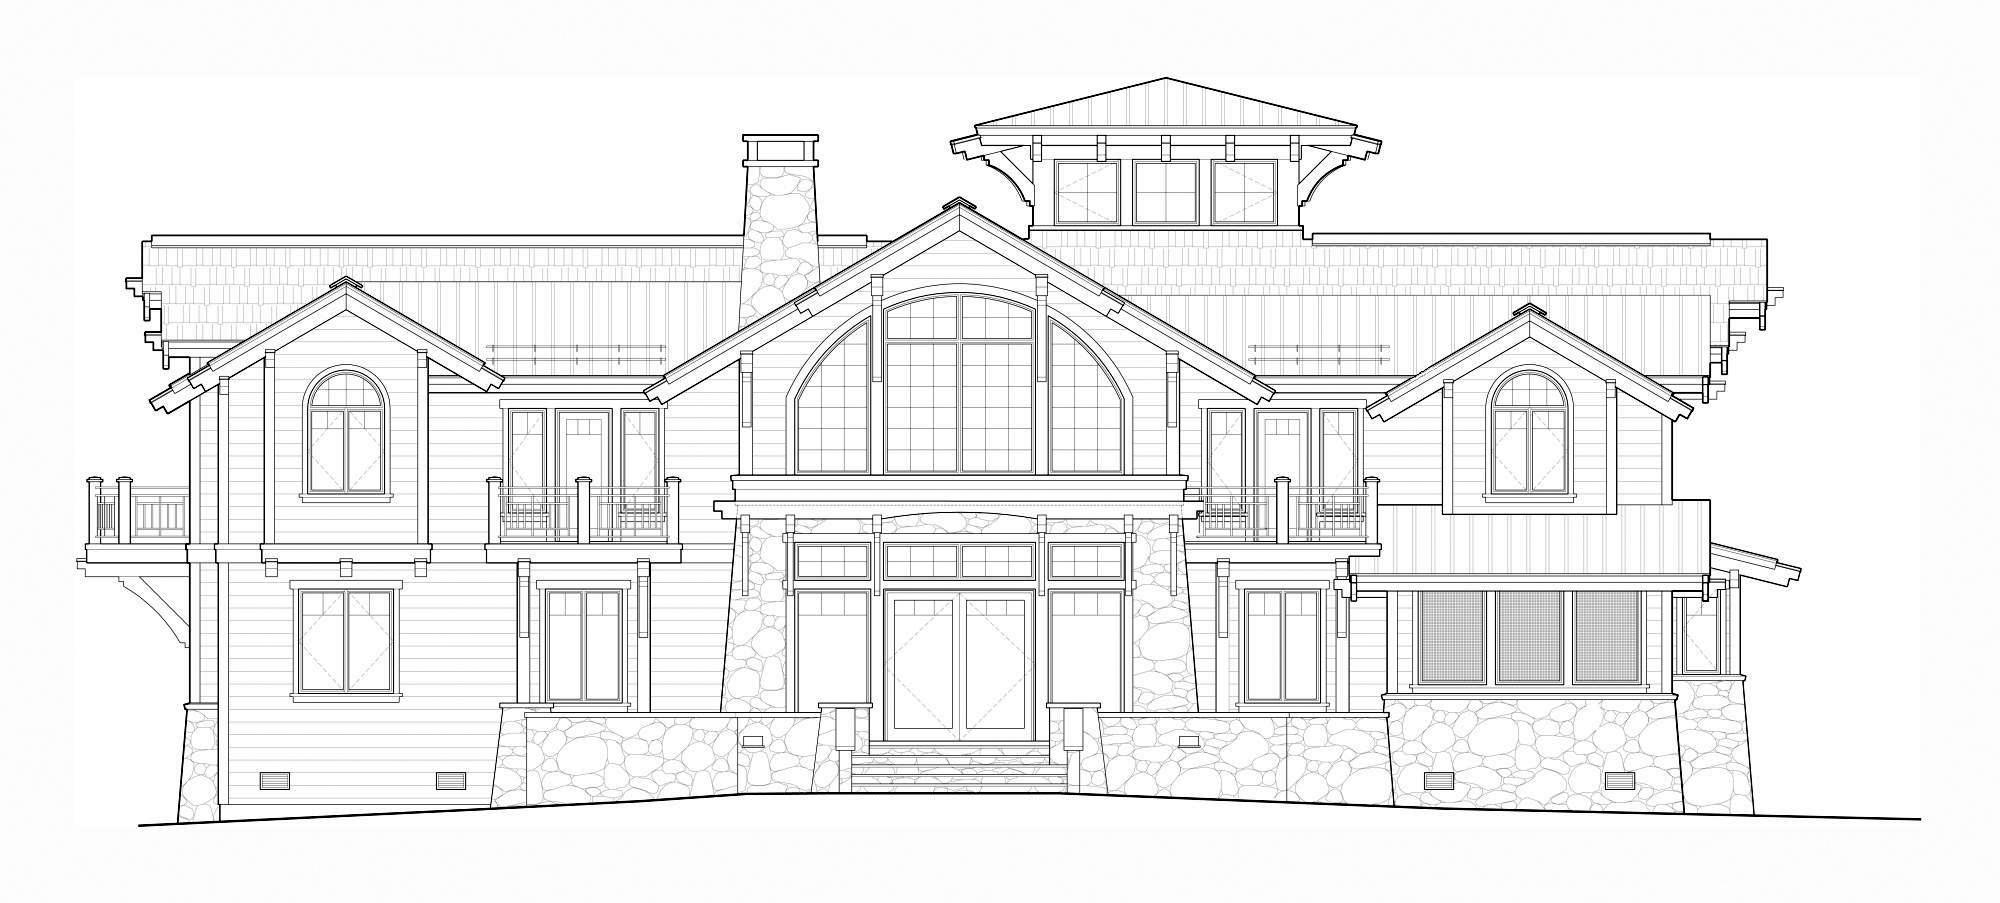 Building Front Elevation Drawings : Idaho mountain architects hendricks architecture